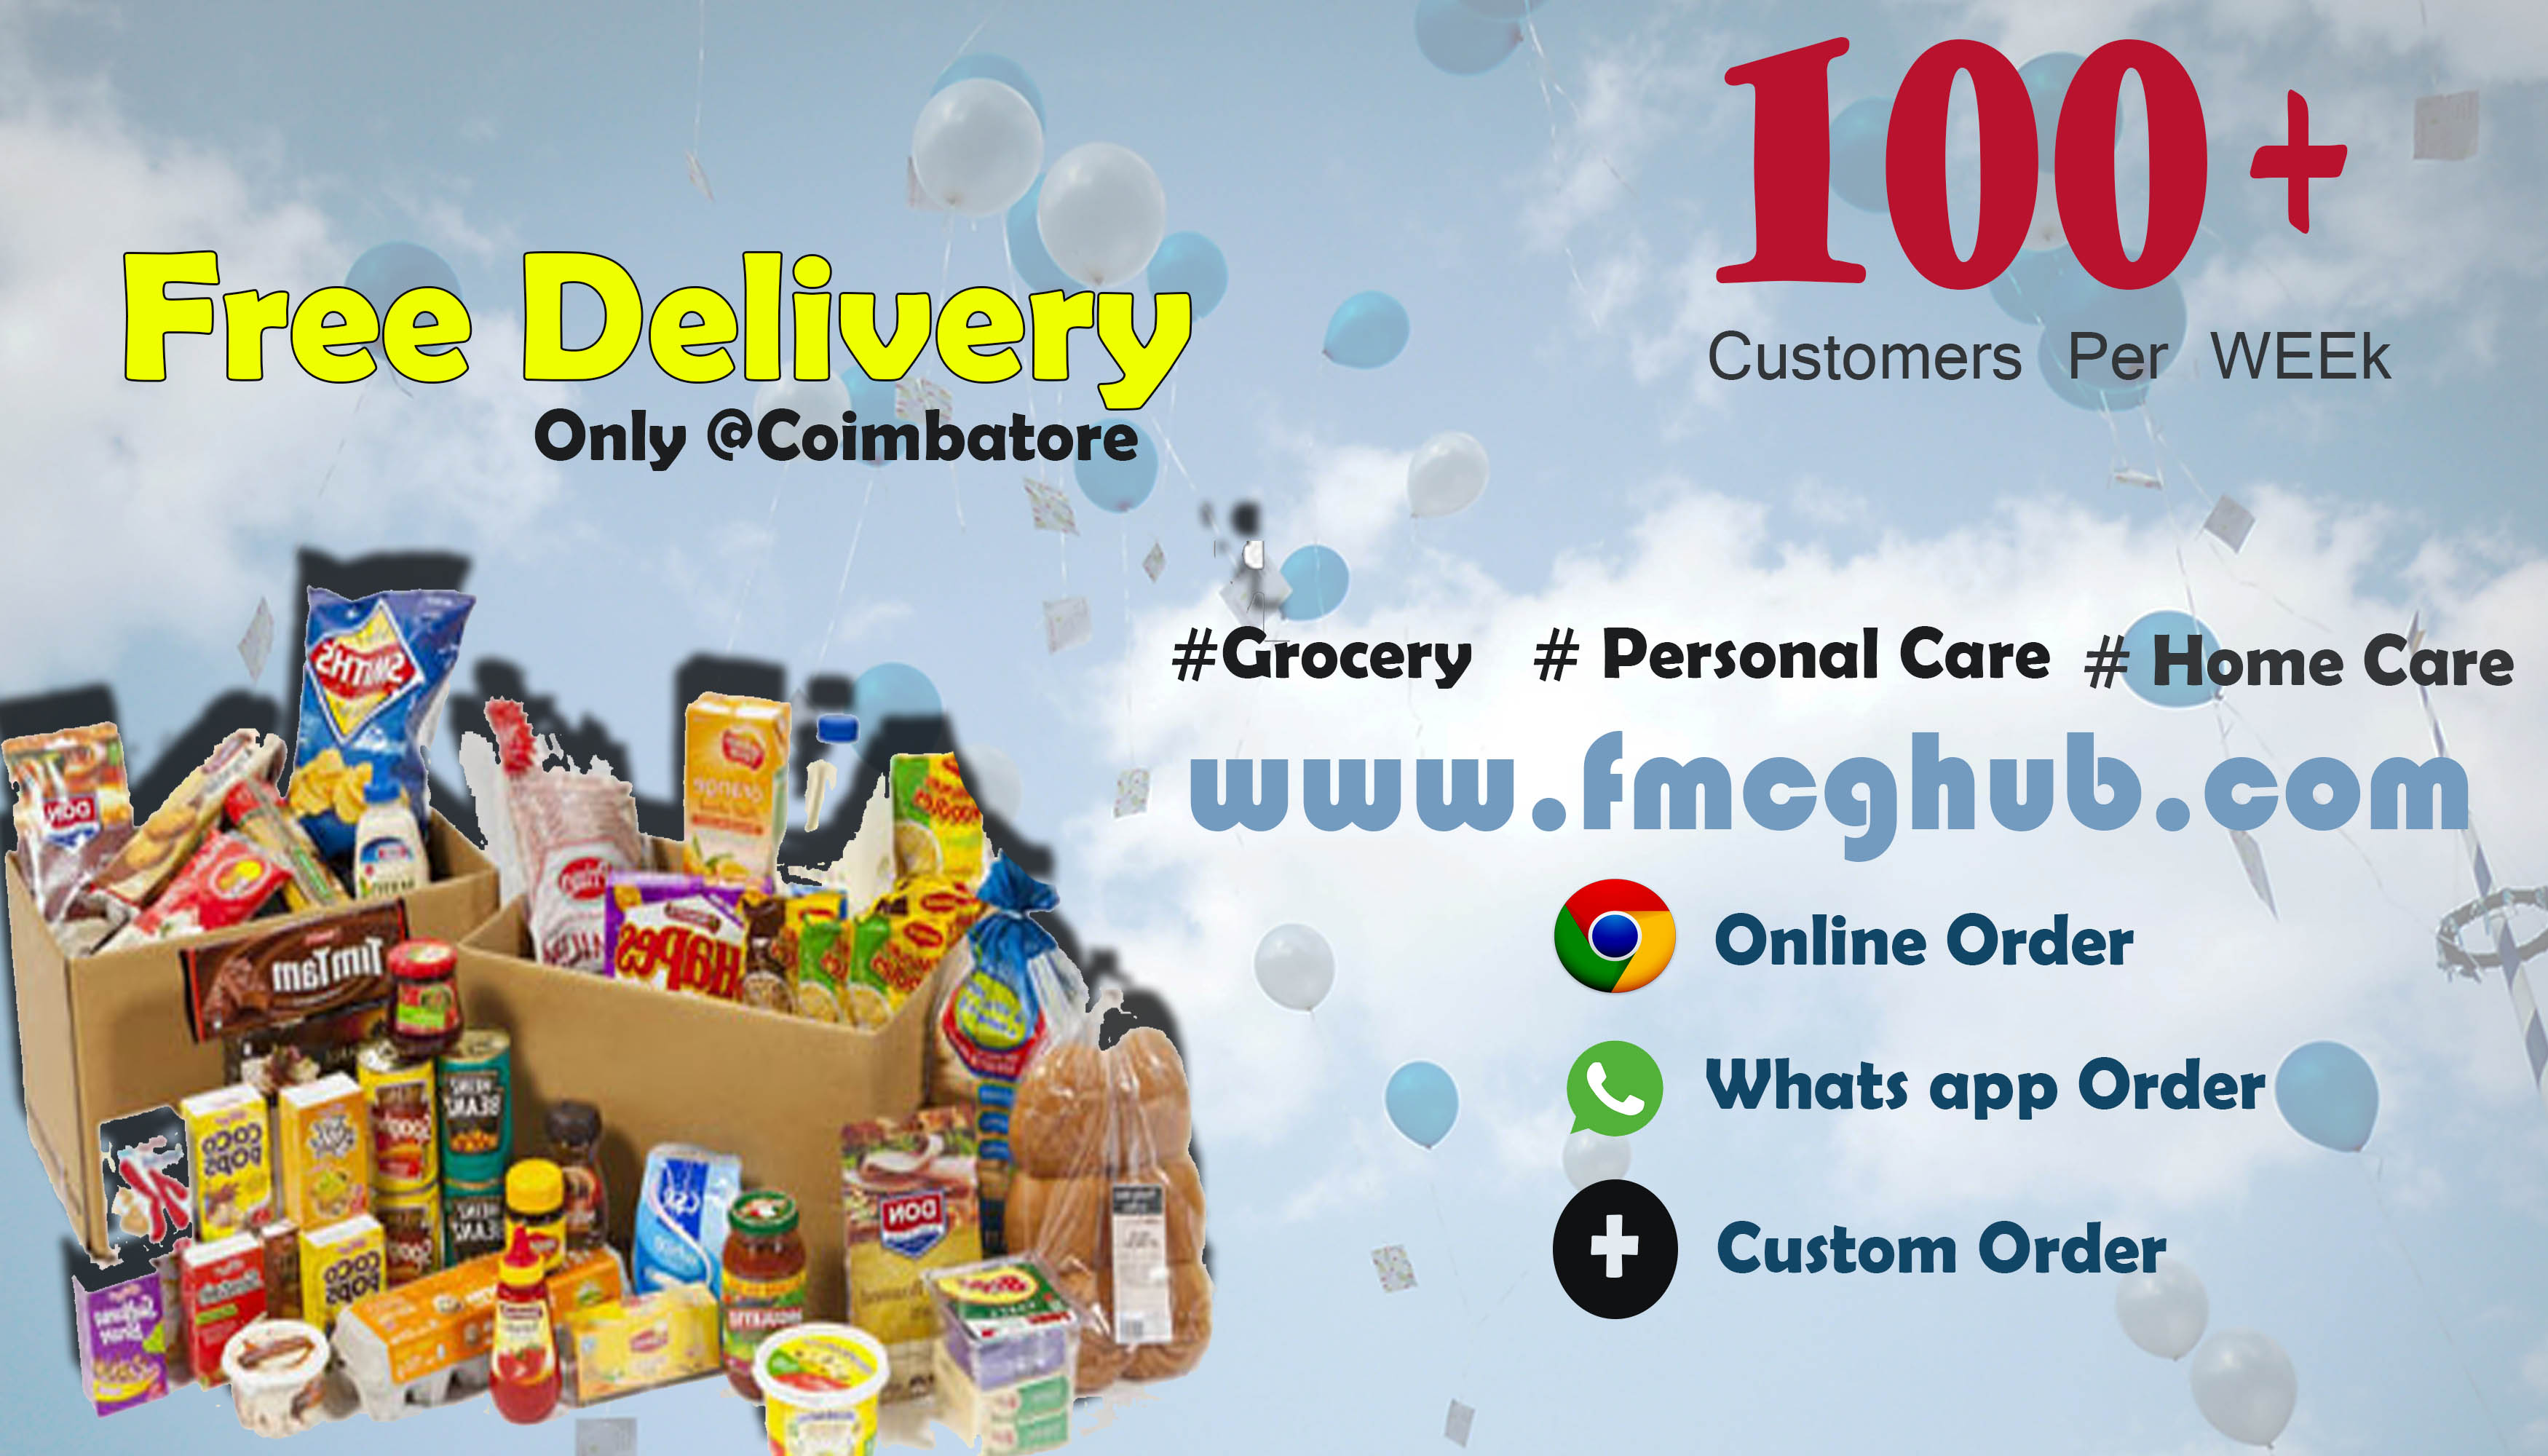 Free delivery service in Coimbatore